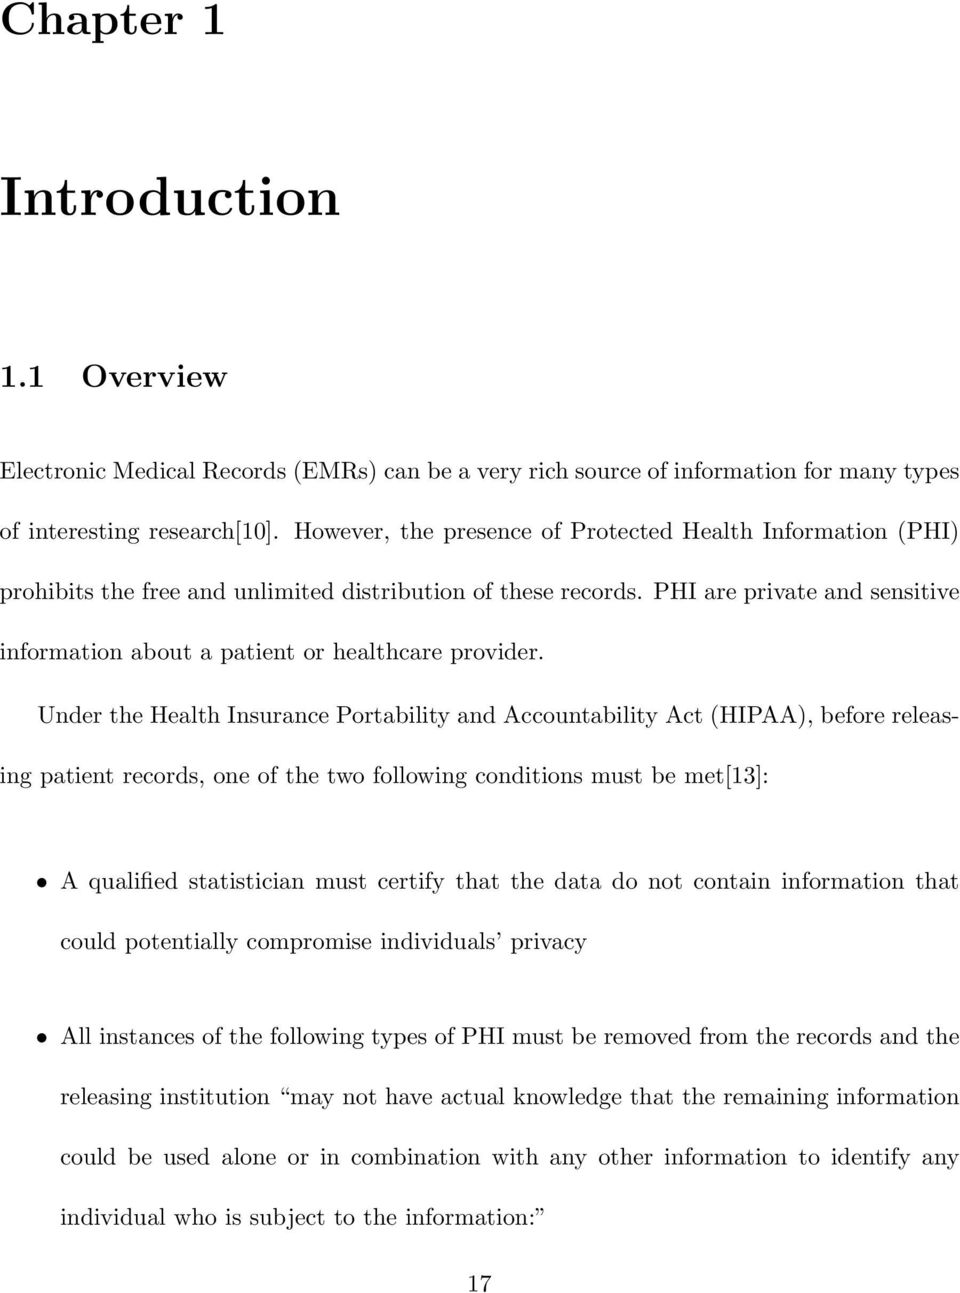 PHI are private and sensitive information about a patient or healthcare provider.